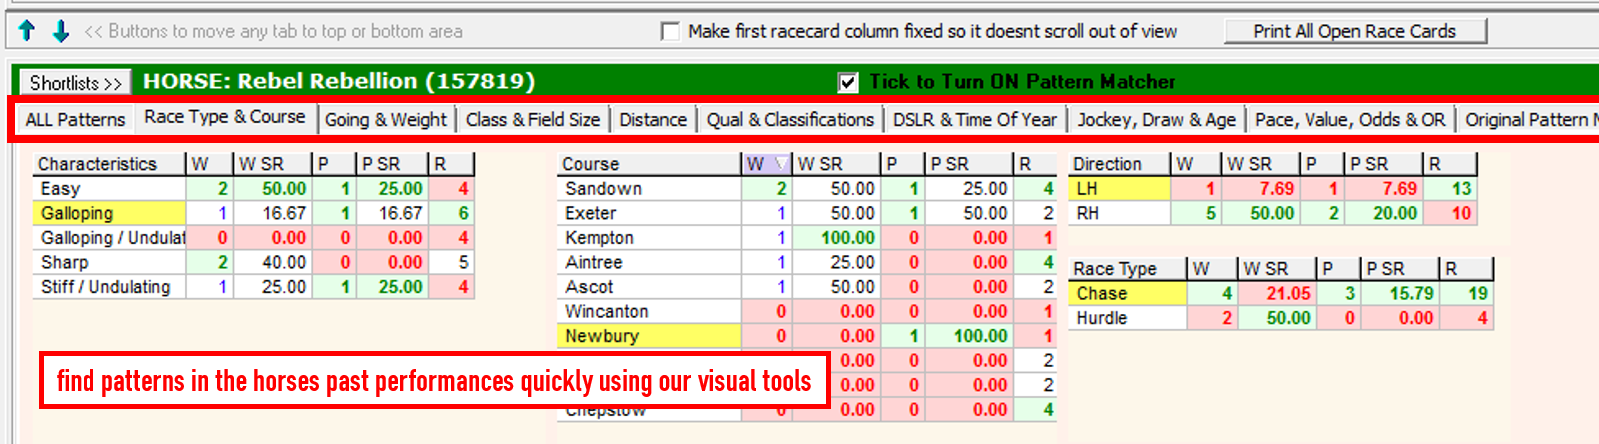 Horse Racing Software & Race Guide Cards | Proform Racing